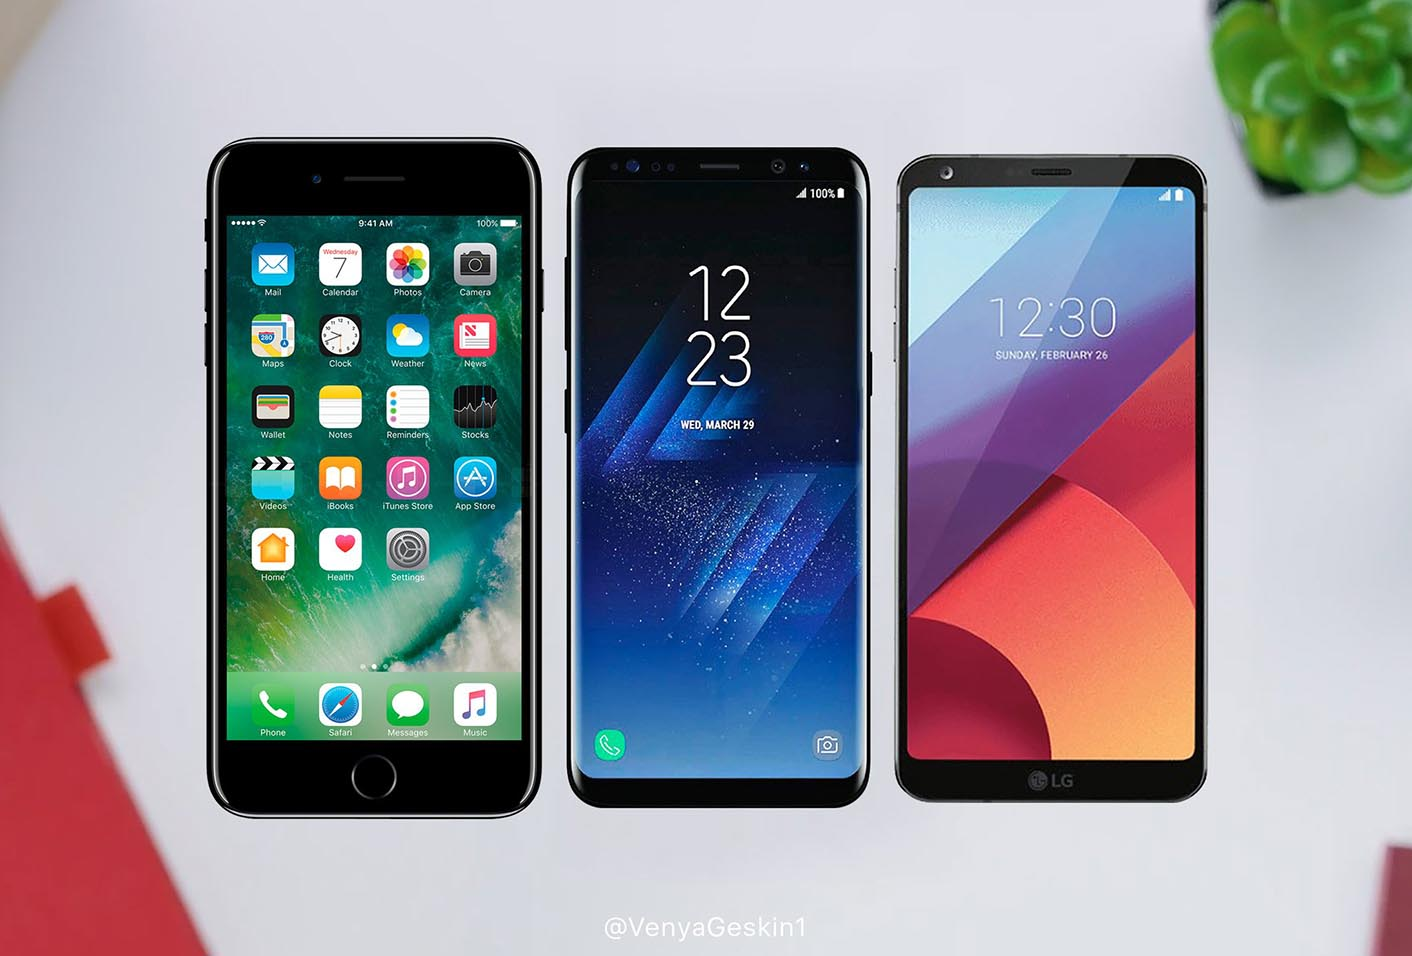 iPhone 8 LG G6 Galaxy S8